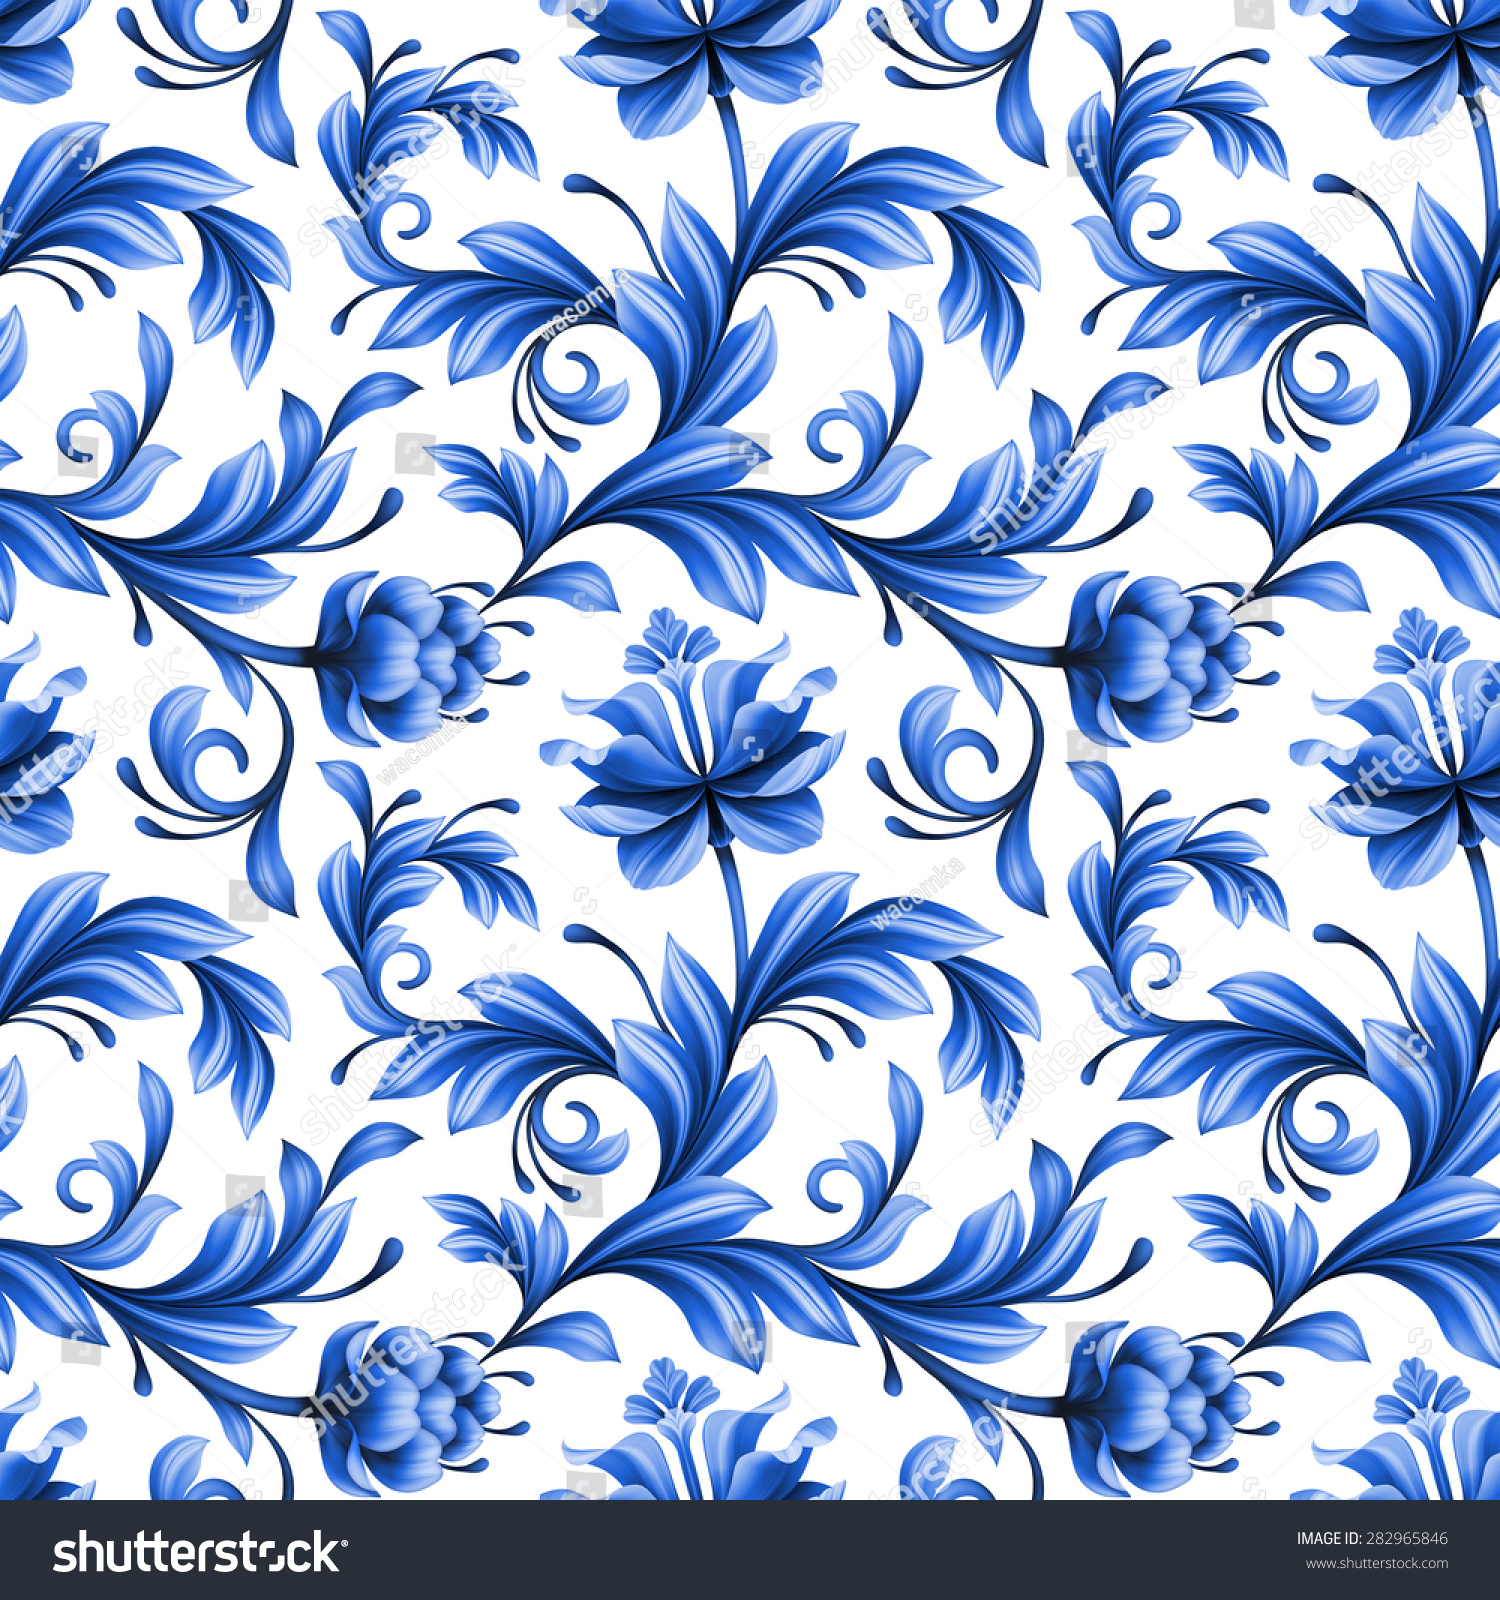 Artistic floral element abstract gzhel folk art blue flowers stock - Abstract Floral Seamless Background Pattern With Folk Art Flowers Blue White Gzhel Ornament